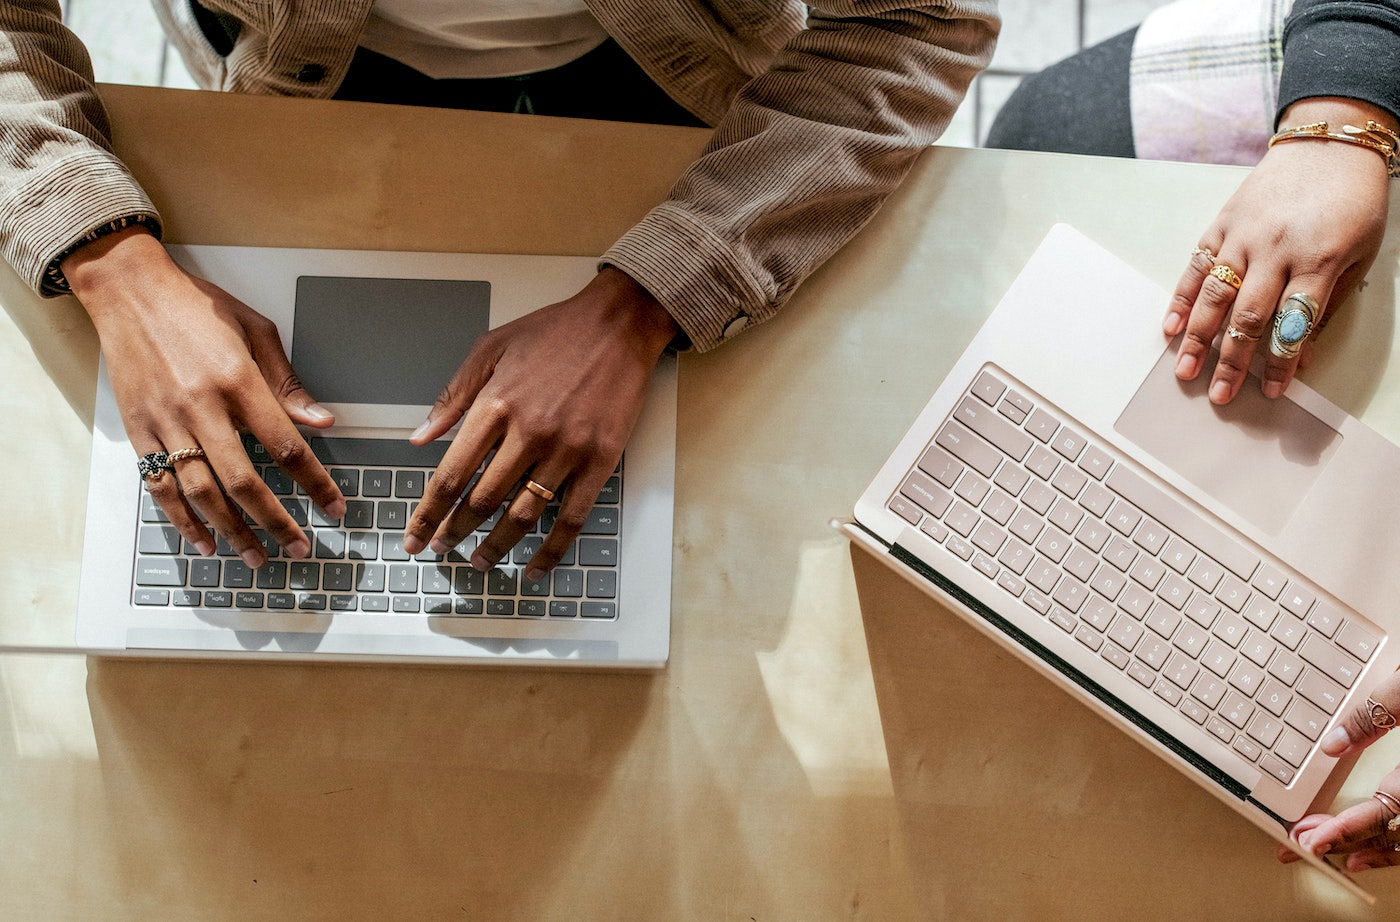 Two people's hands with laptops